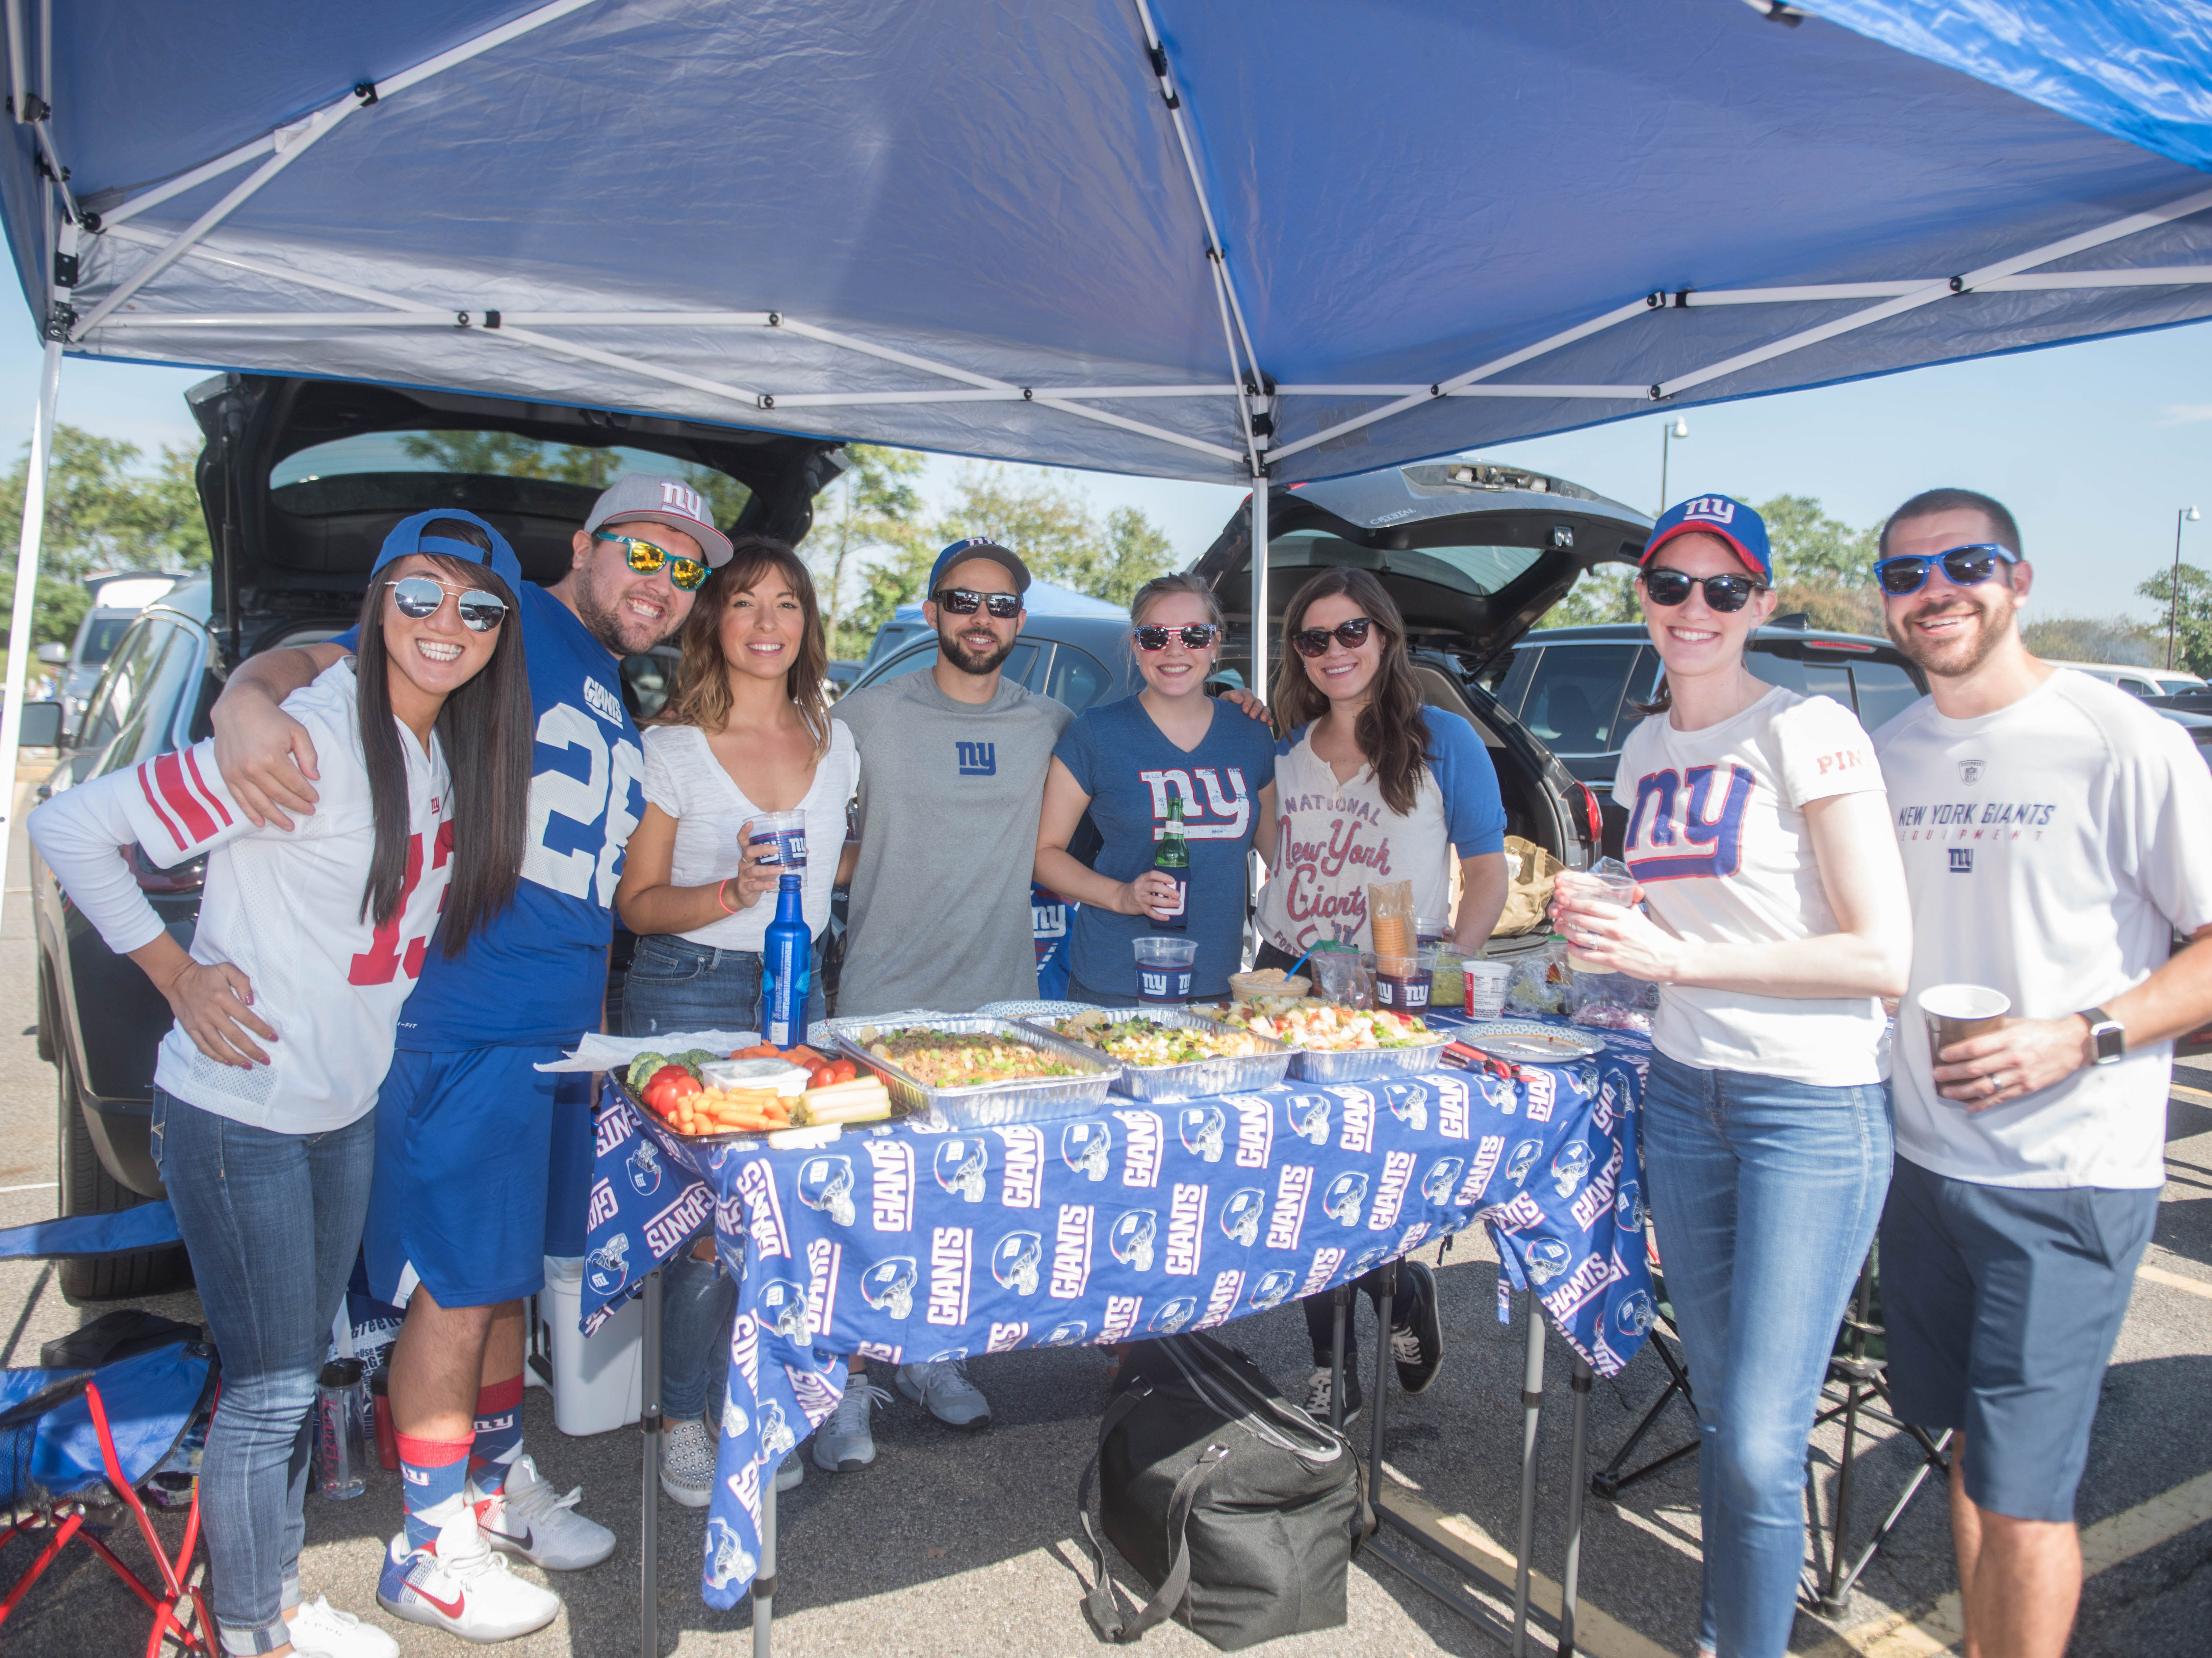 Ajurah, Matt, Lauren, Evan, Kate, Gina, Kaitlyn and Vincent at the Giants vs. Saints tailgate party, Sunday, Sept. 30, 2018.